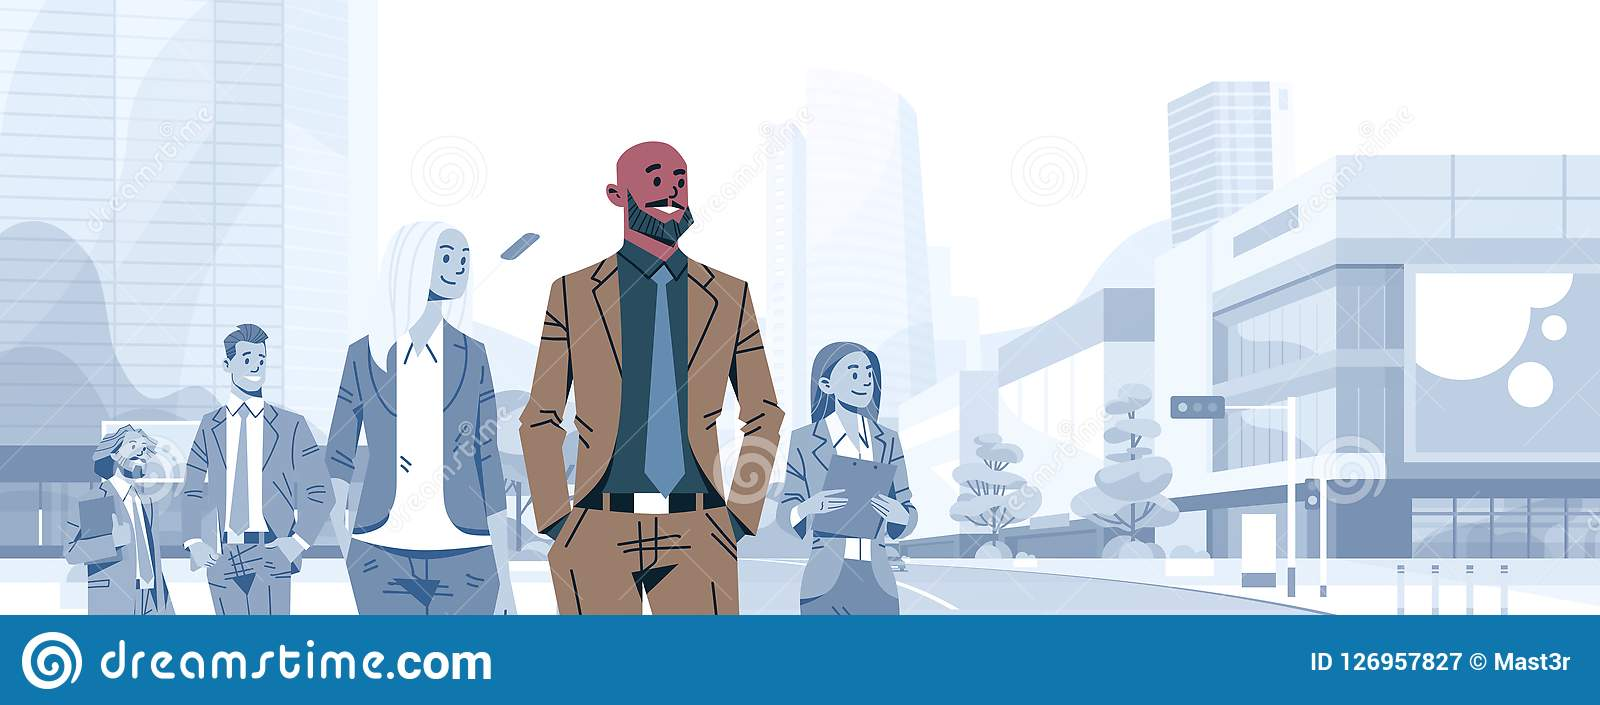 Bald head businessman team leader boss stand out business people group individual leadership concept male cartoon